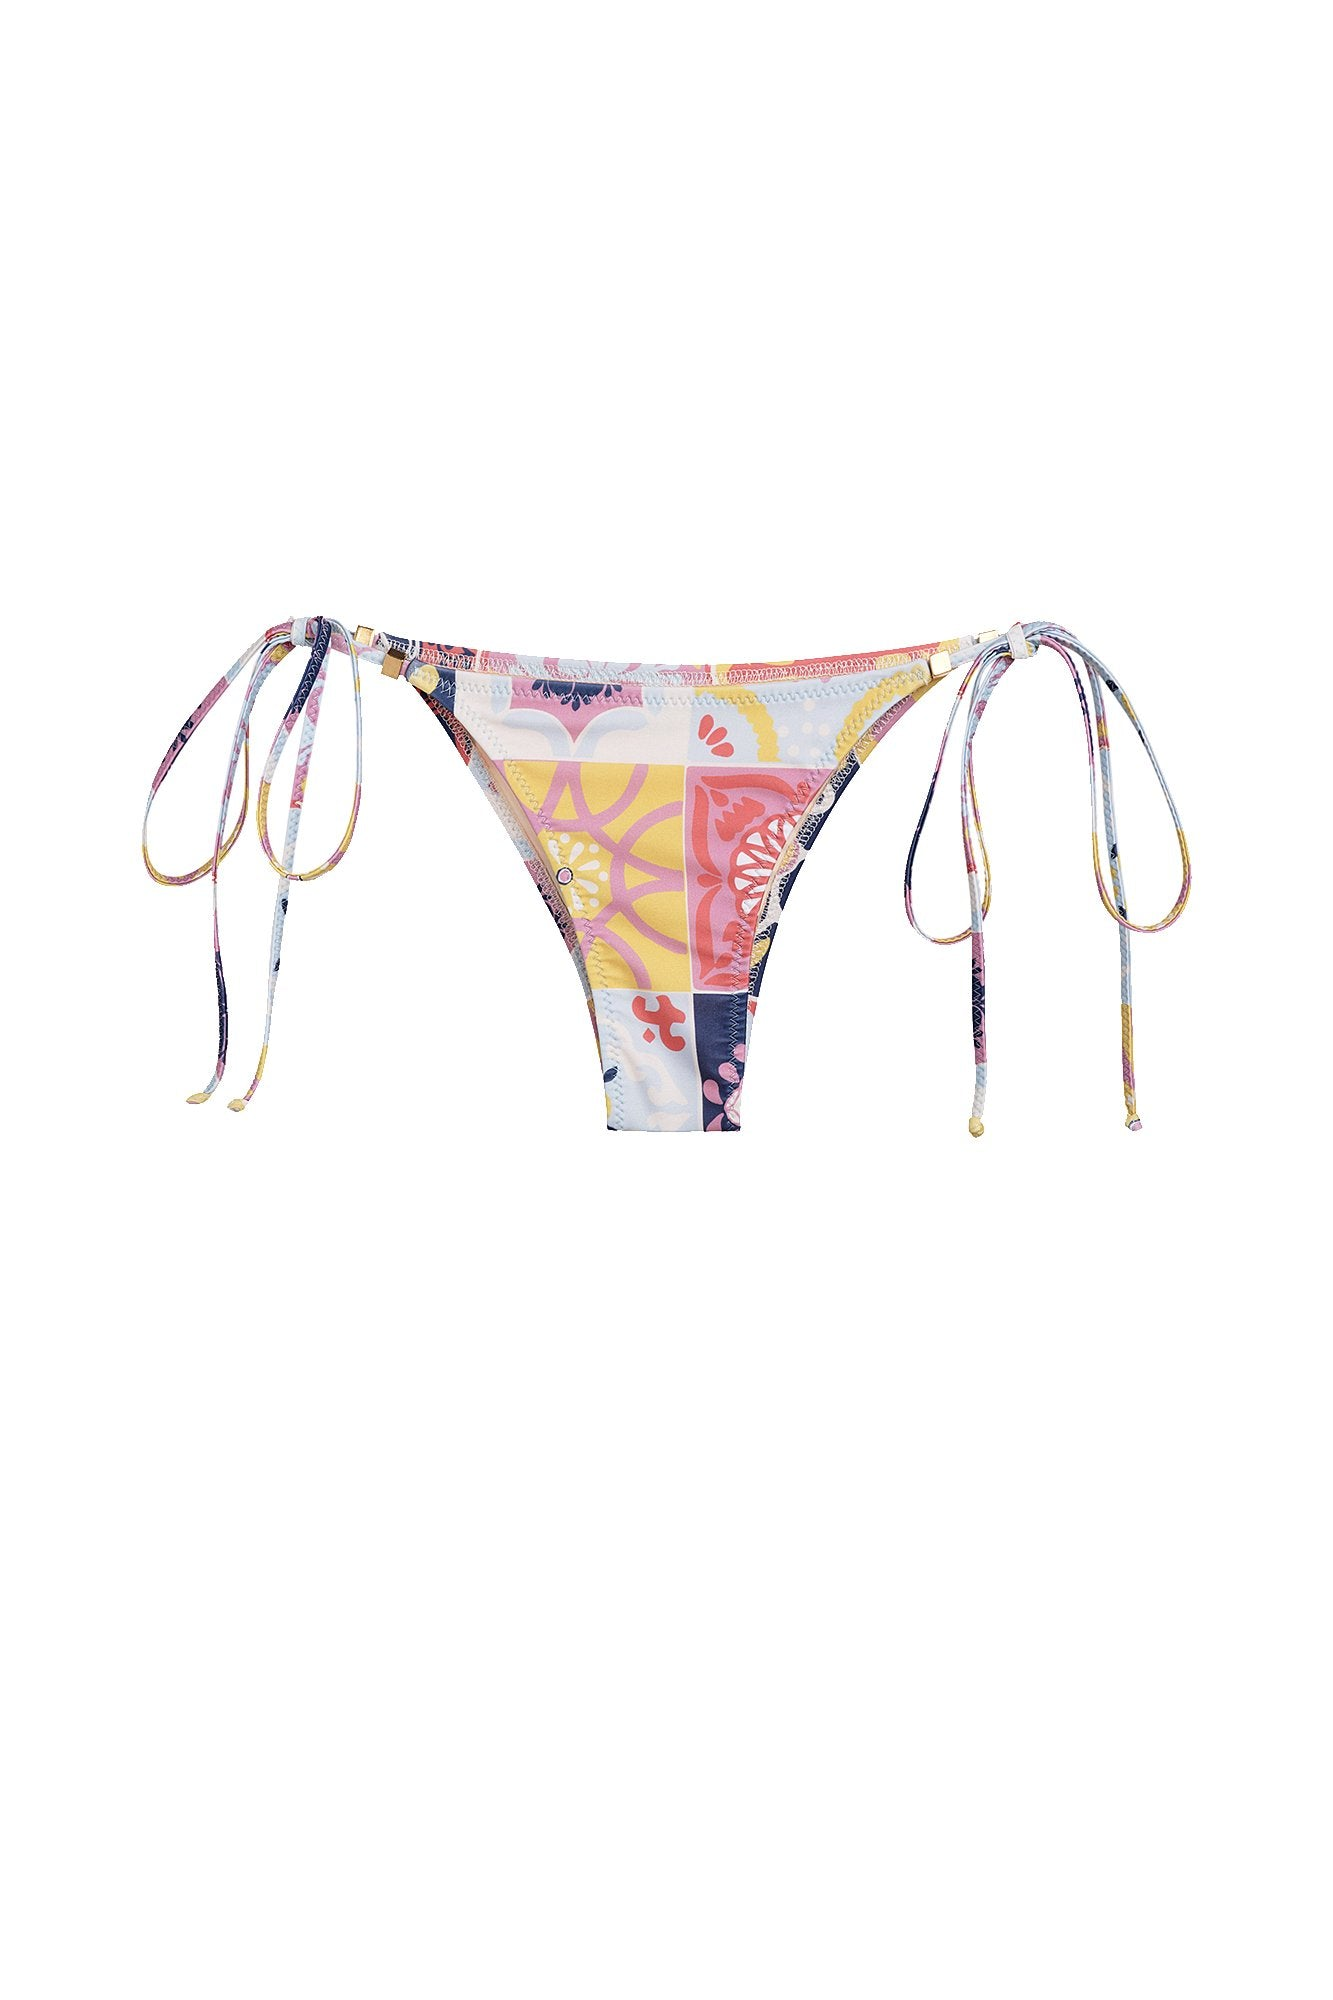 Carolina K Gabriela Bikini Bottom in Terracotta Tile Multi